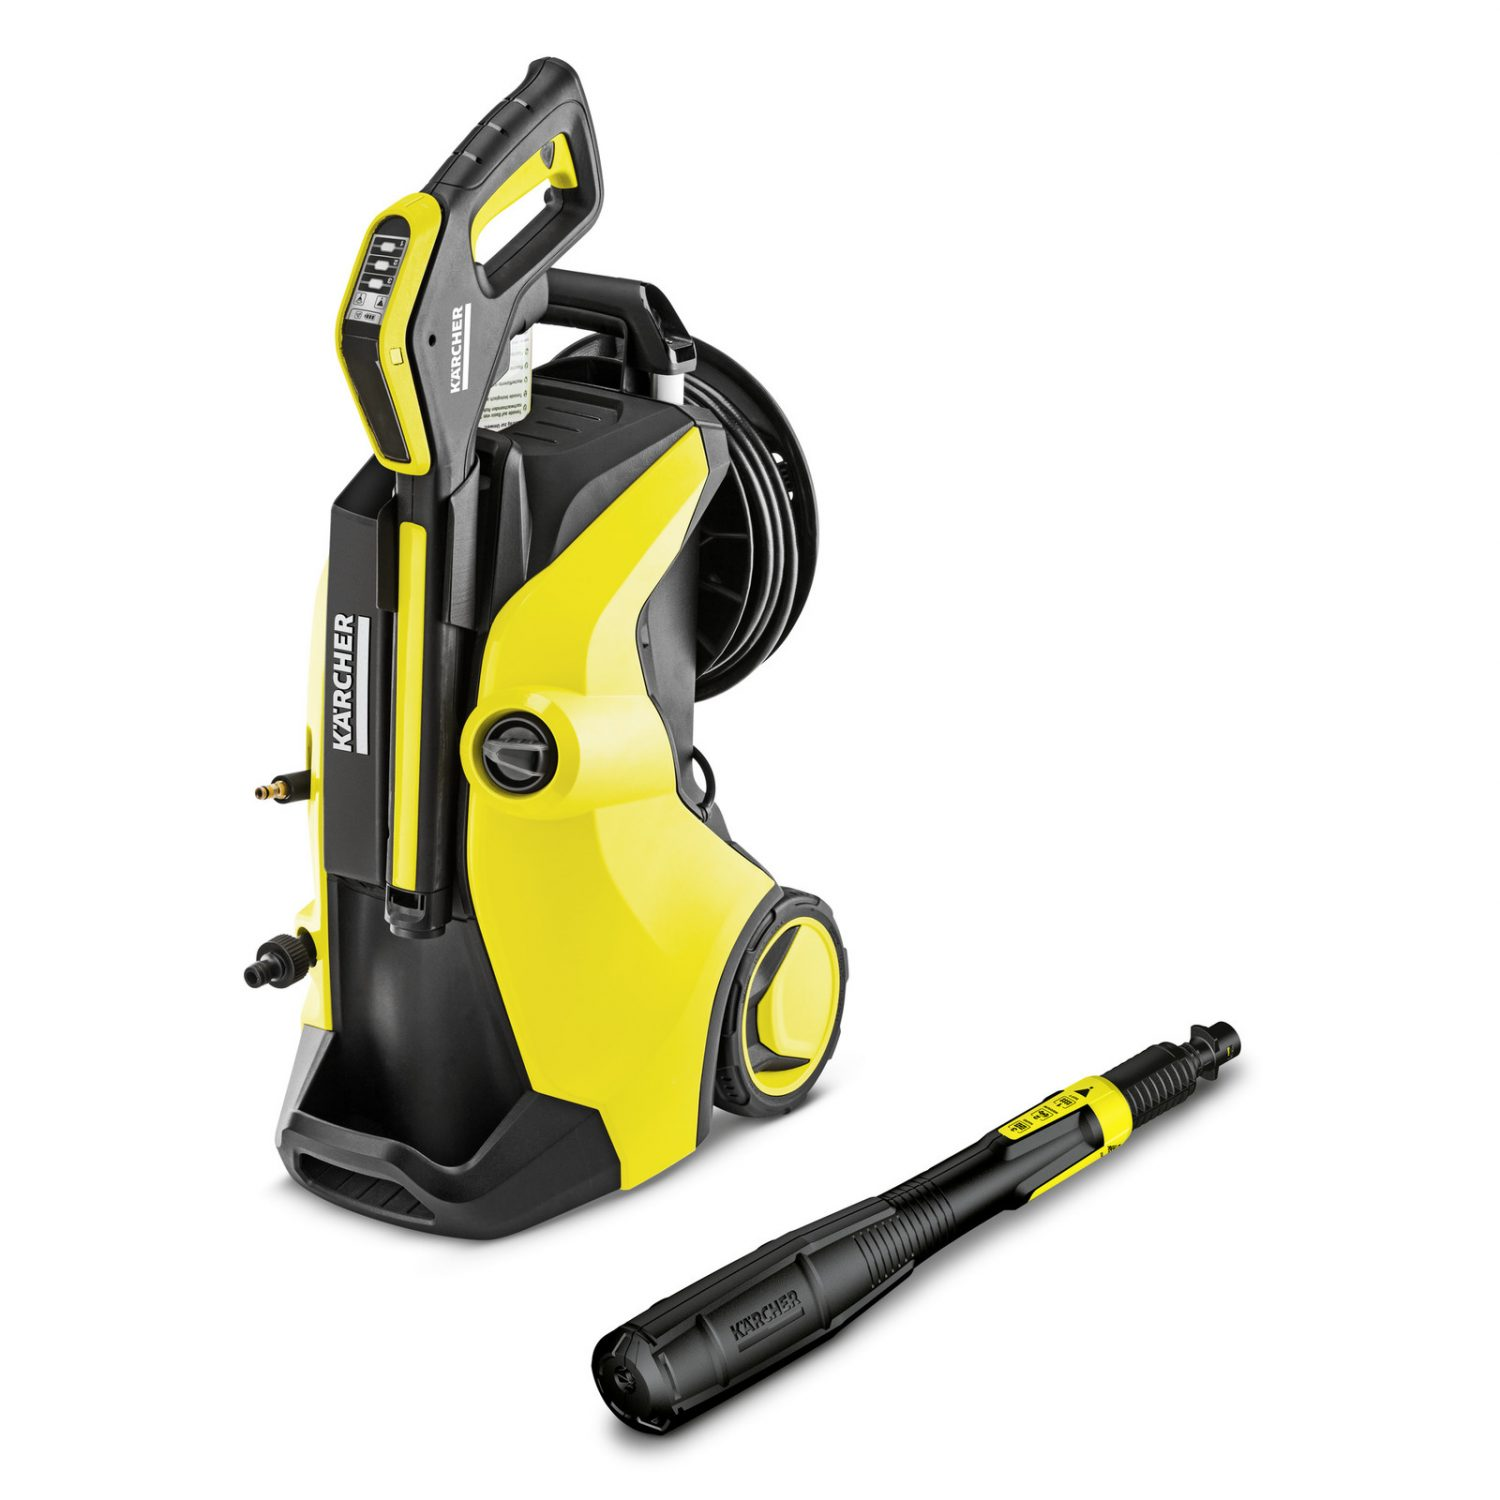 1.324-632.0_High Pressure Washer-Karcher Distributor in UAE